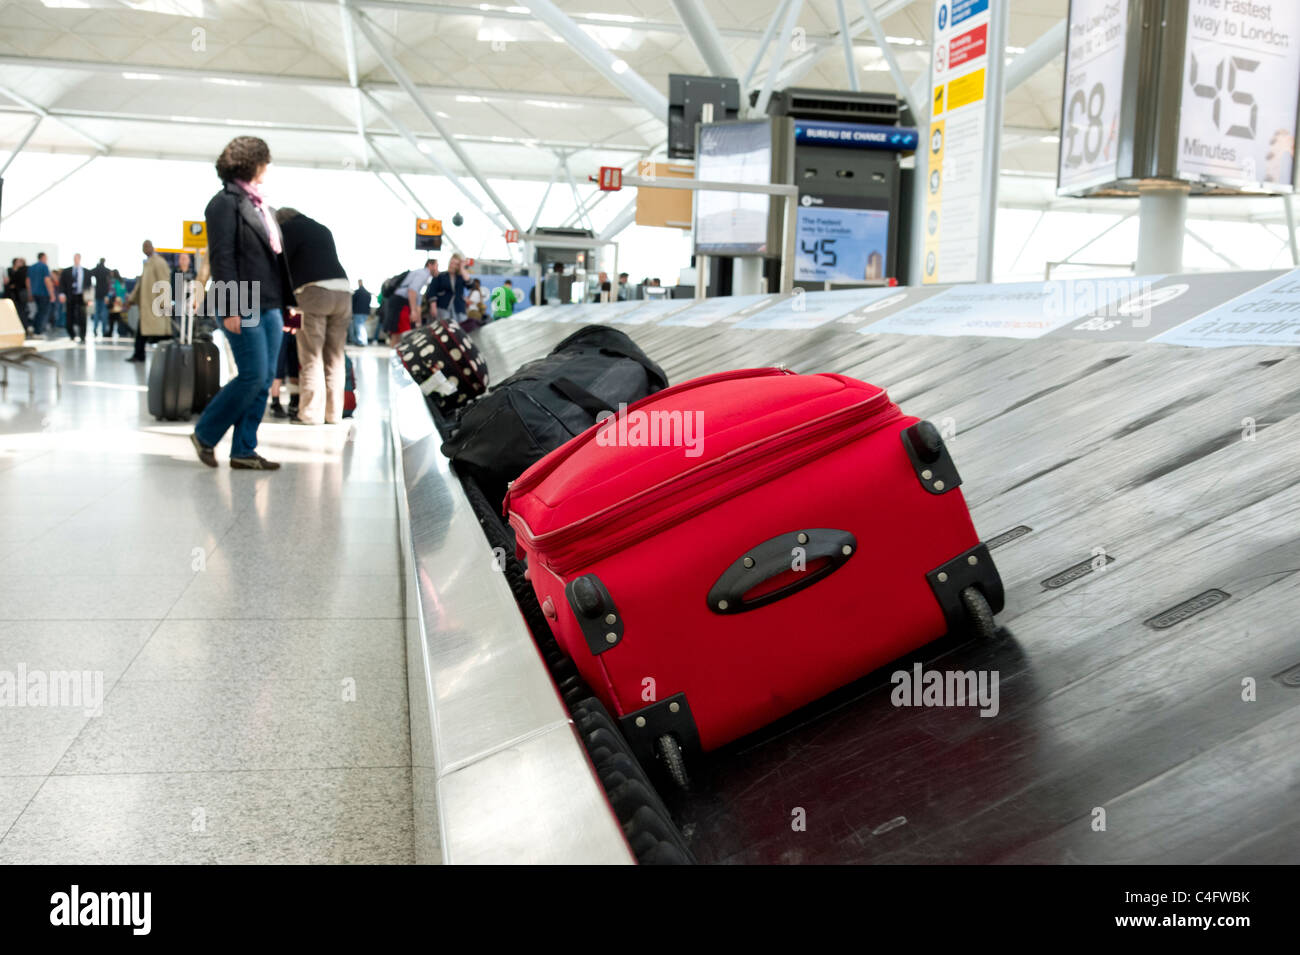 Luggage carousel at Stansted Airport, UK - Stock Image